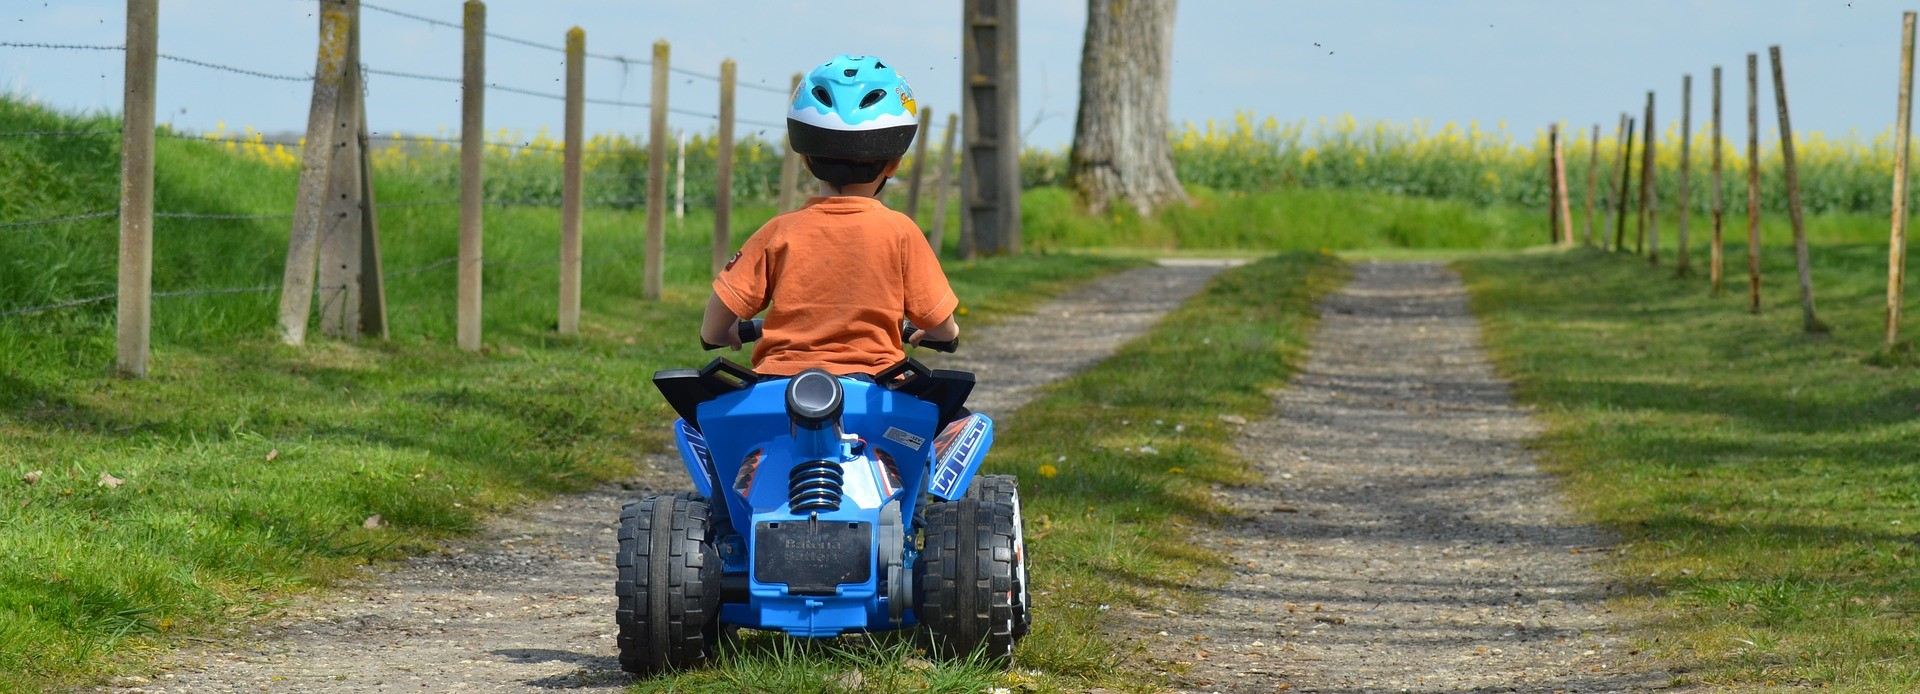 child on a quad bike